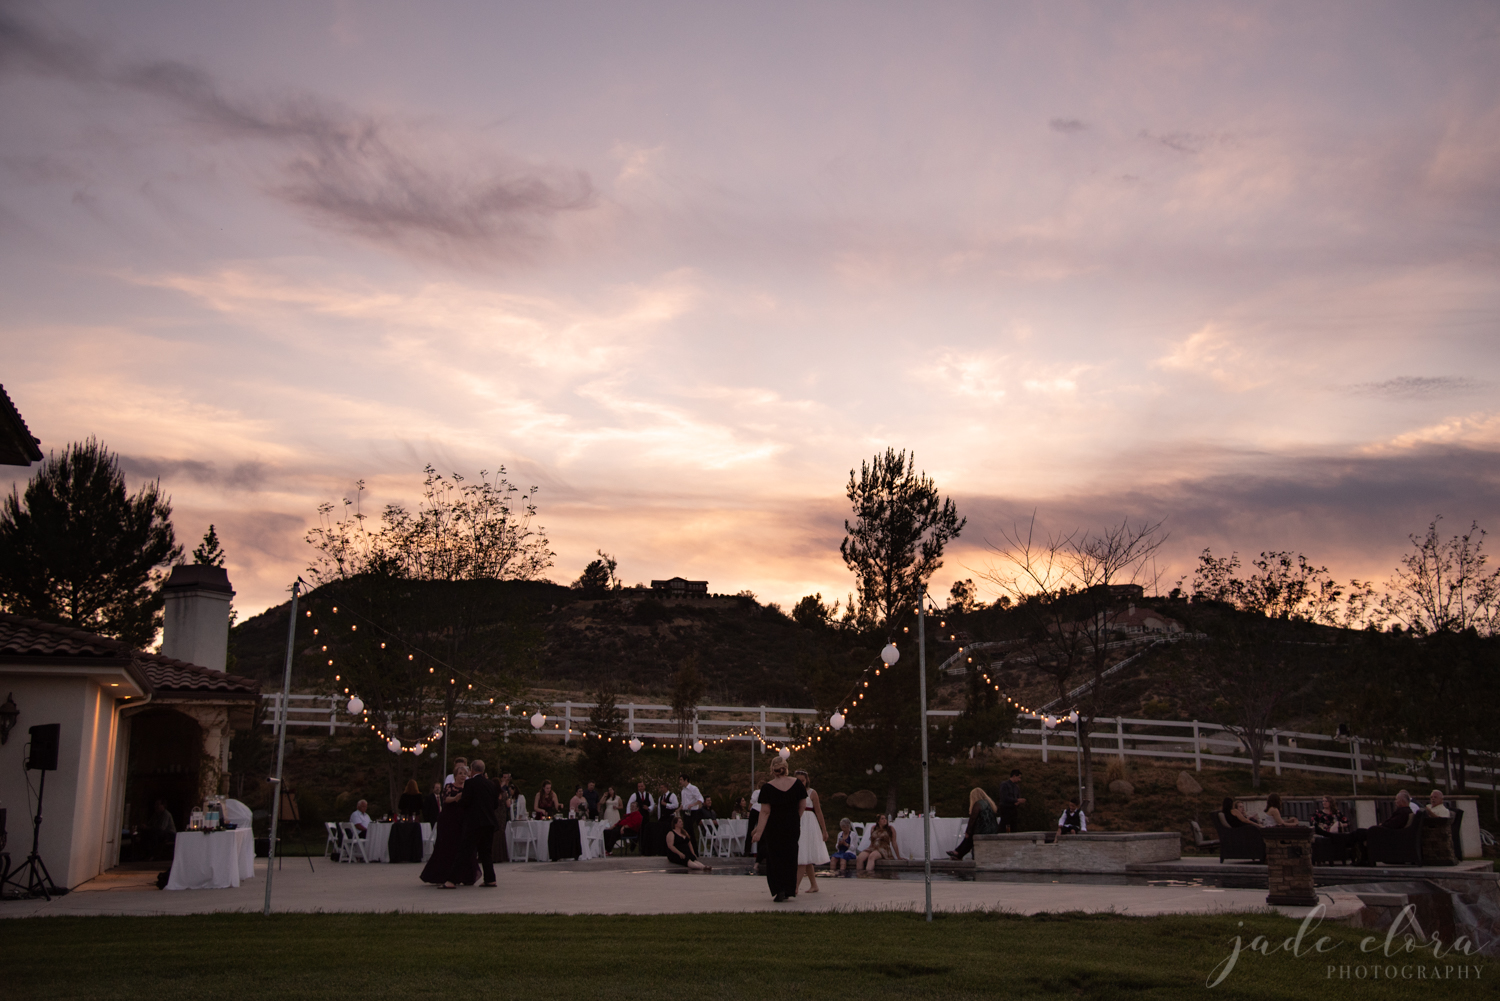 Glendale-Wedding-Photographer-Blog-Jade-Elora-097-2.jpg